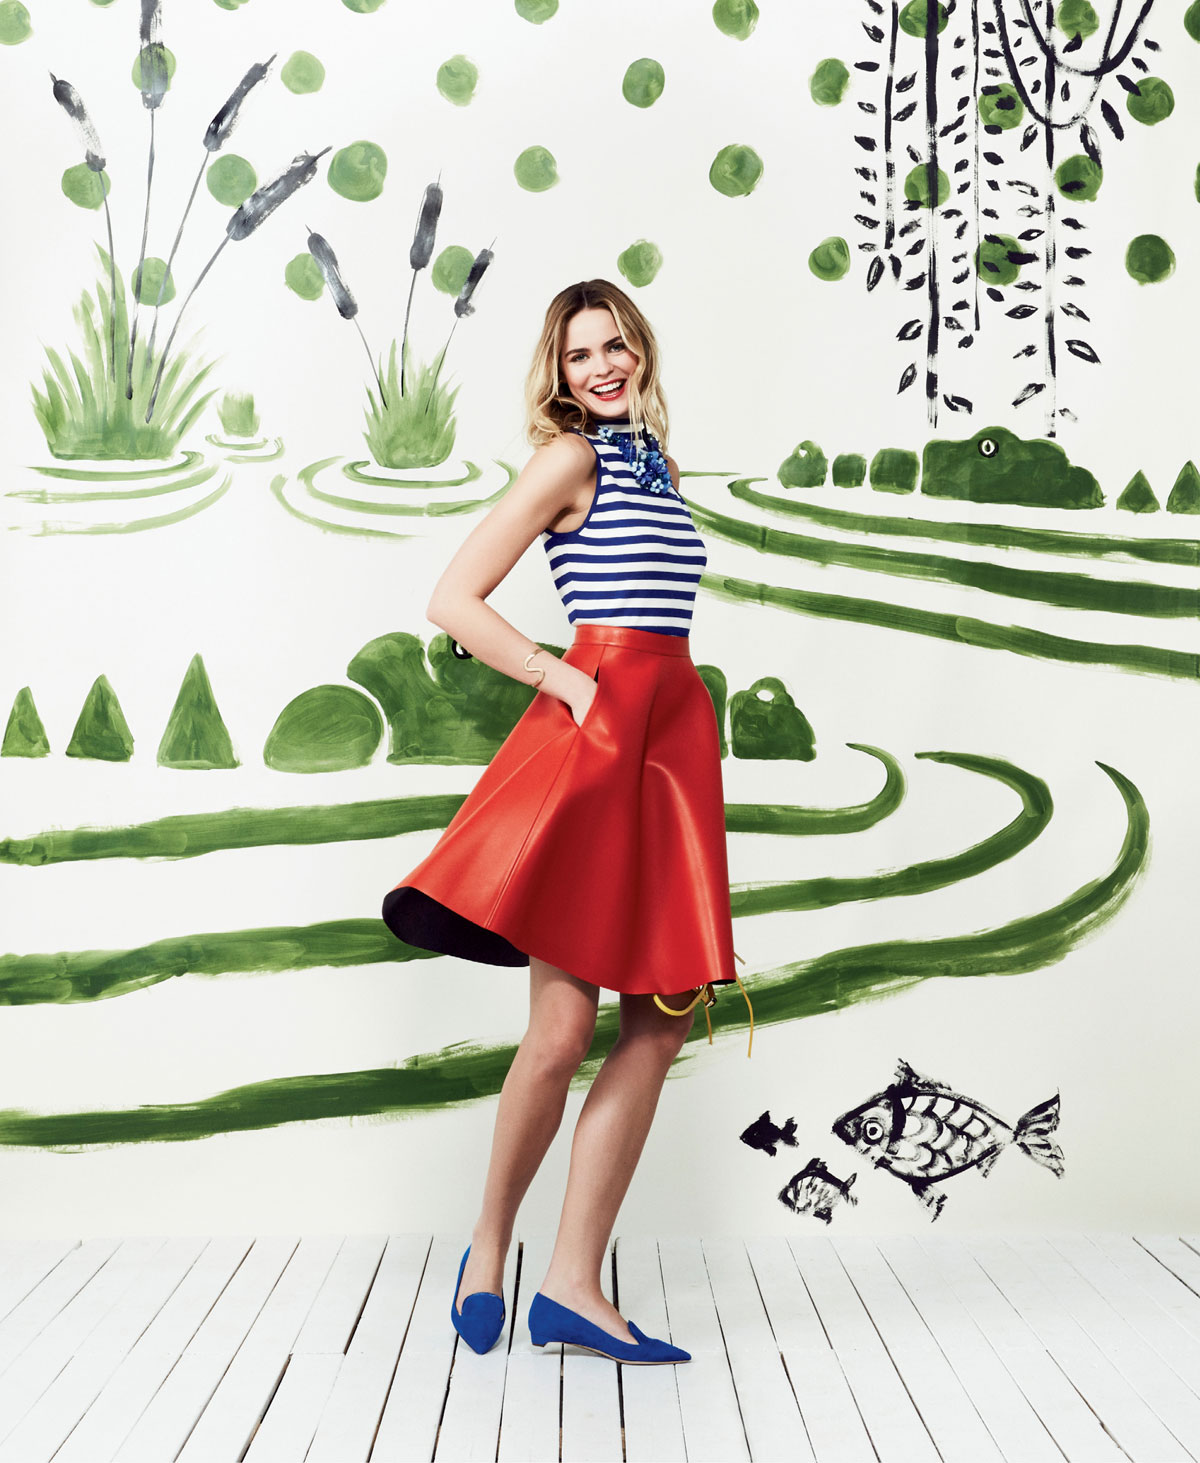 """Milly striped high-neck tank, $195 at Gwynn's of Mount Pleasant; MSGM eco leather A-line skirt, $400 at Hampden Clothing; Clotilde Silva blue beaded floral bib necklace, $128 at Hidden Countship; and Rupert Sanderson """"Jocose"""" suede flats, $575 at Hampden Clothing"""